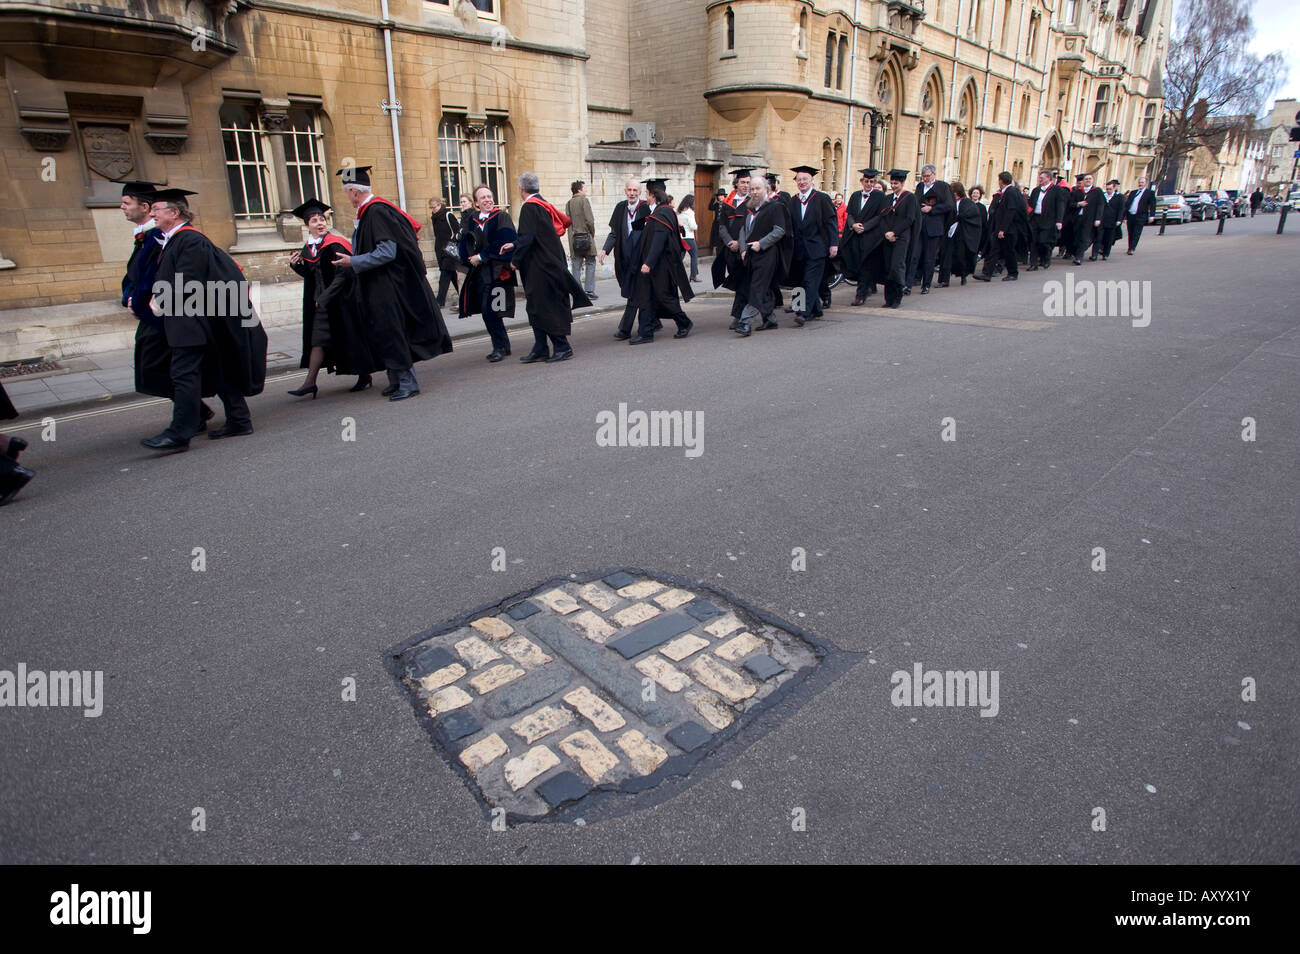 The mark on the road where three protestant martyrs were burnt in Broad St Oxford outside Balliol College - Stock Image